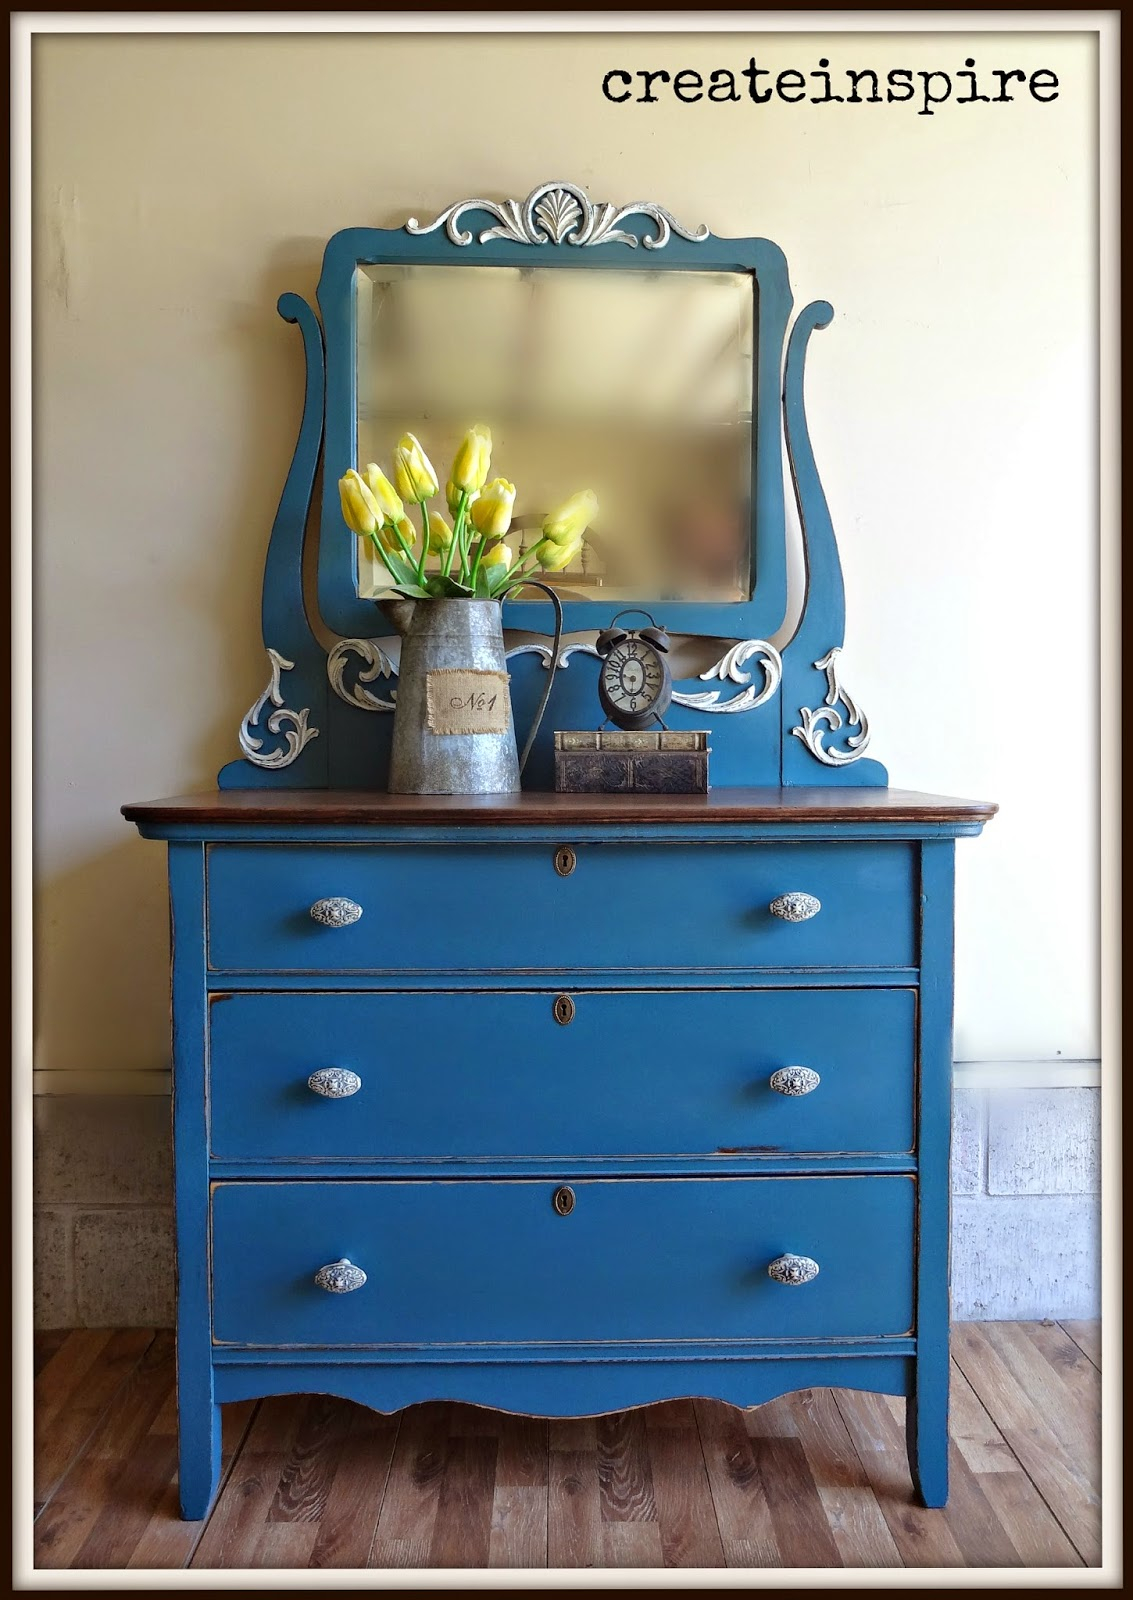 Createinspire Antique Dresser In Seaside From Fusion